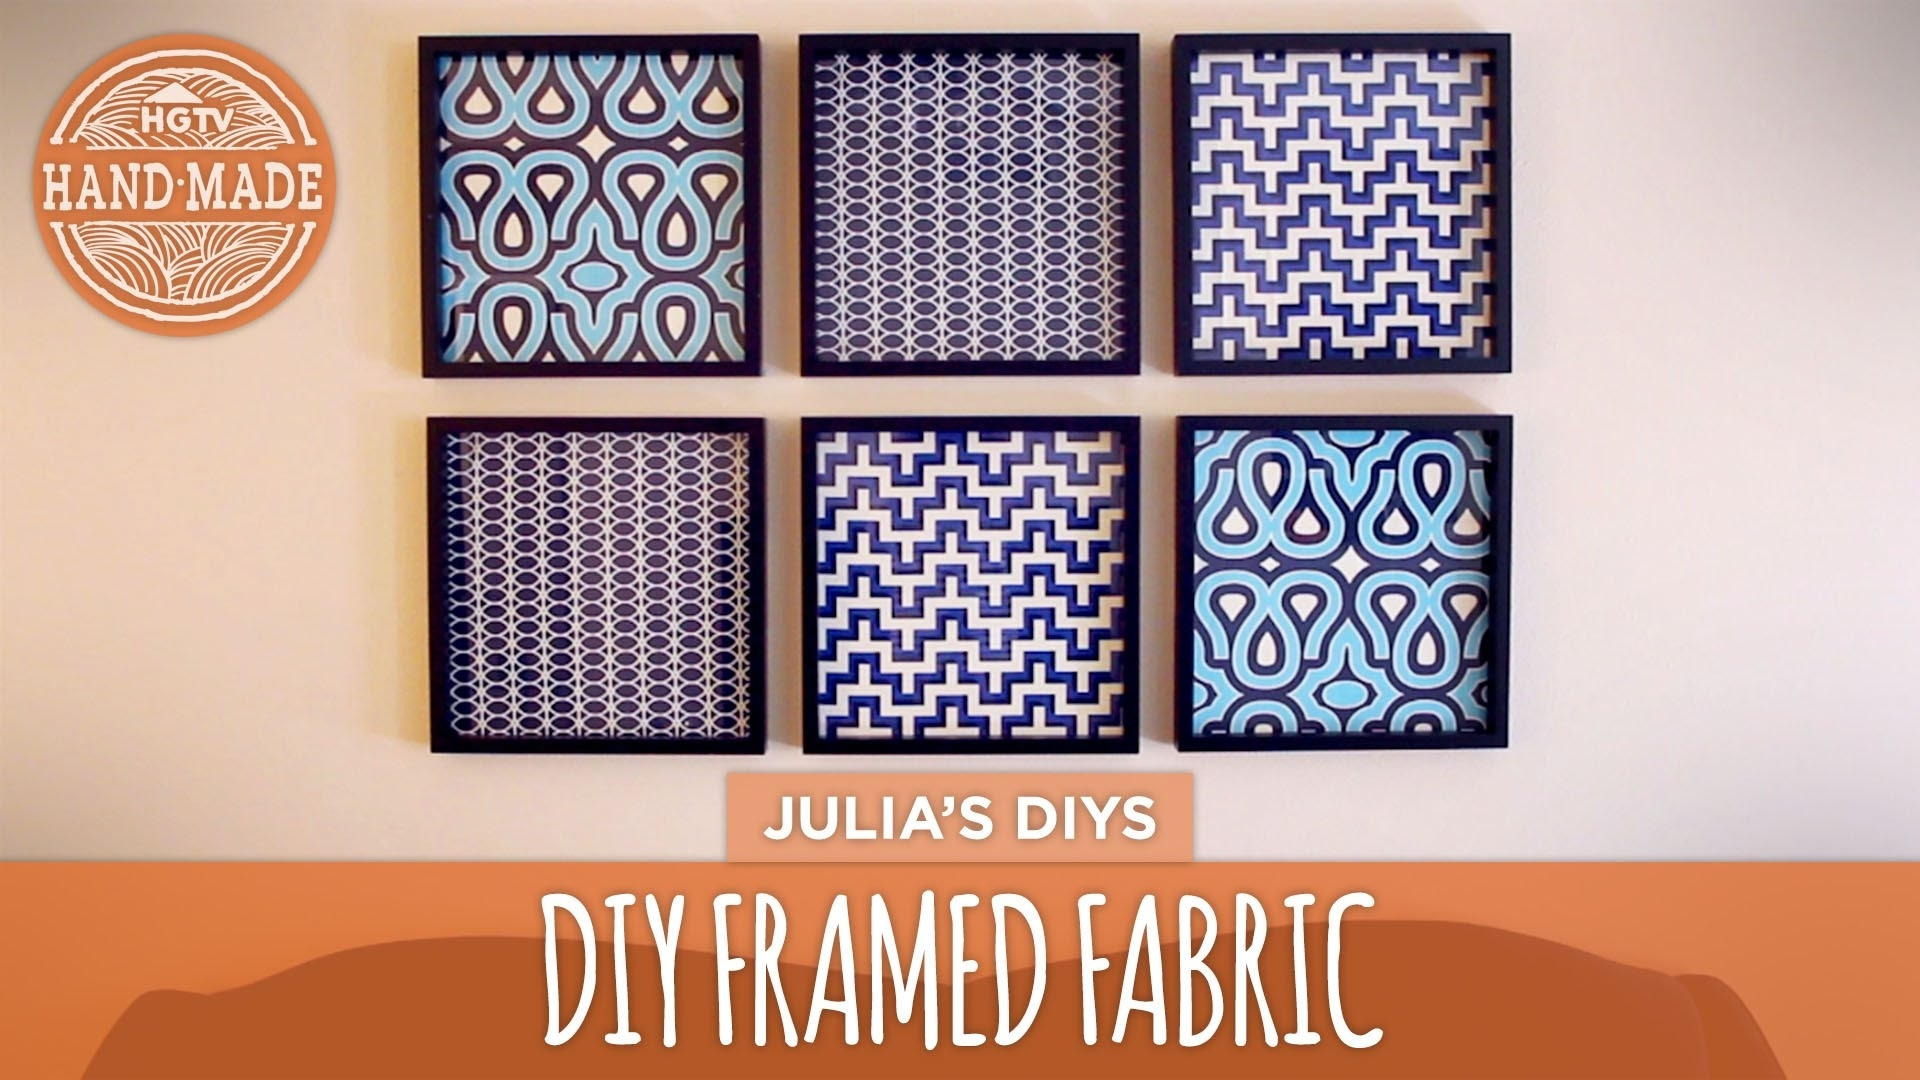 Diy Framed Fabric Gallery Wall - Hgtv Handmade - Youtube in Most Up-to-Date Rustic Fabric Wall Art